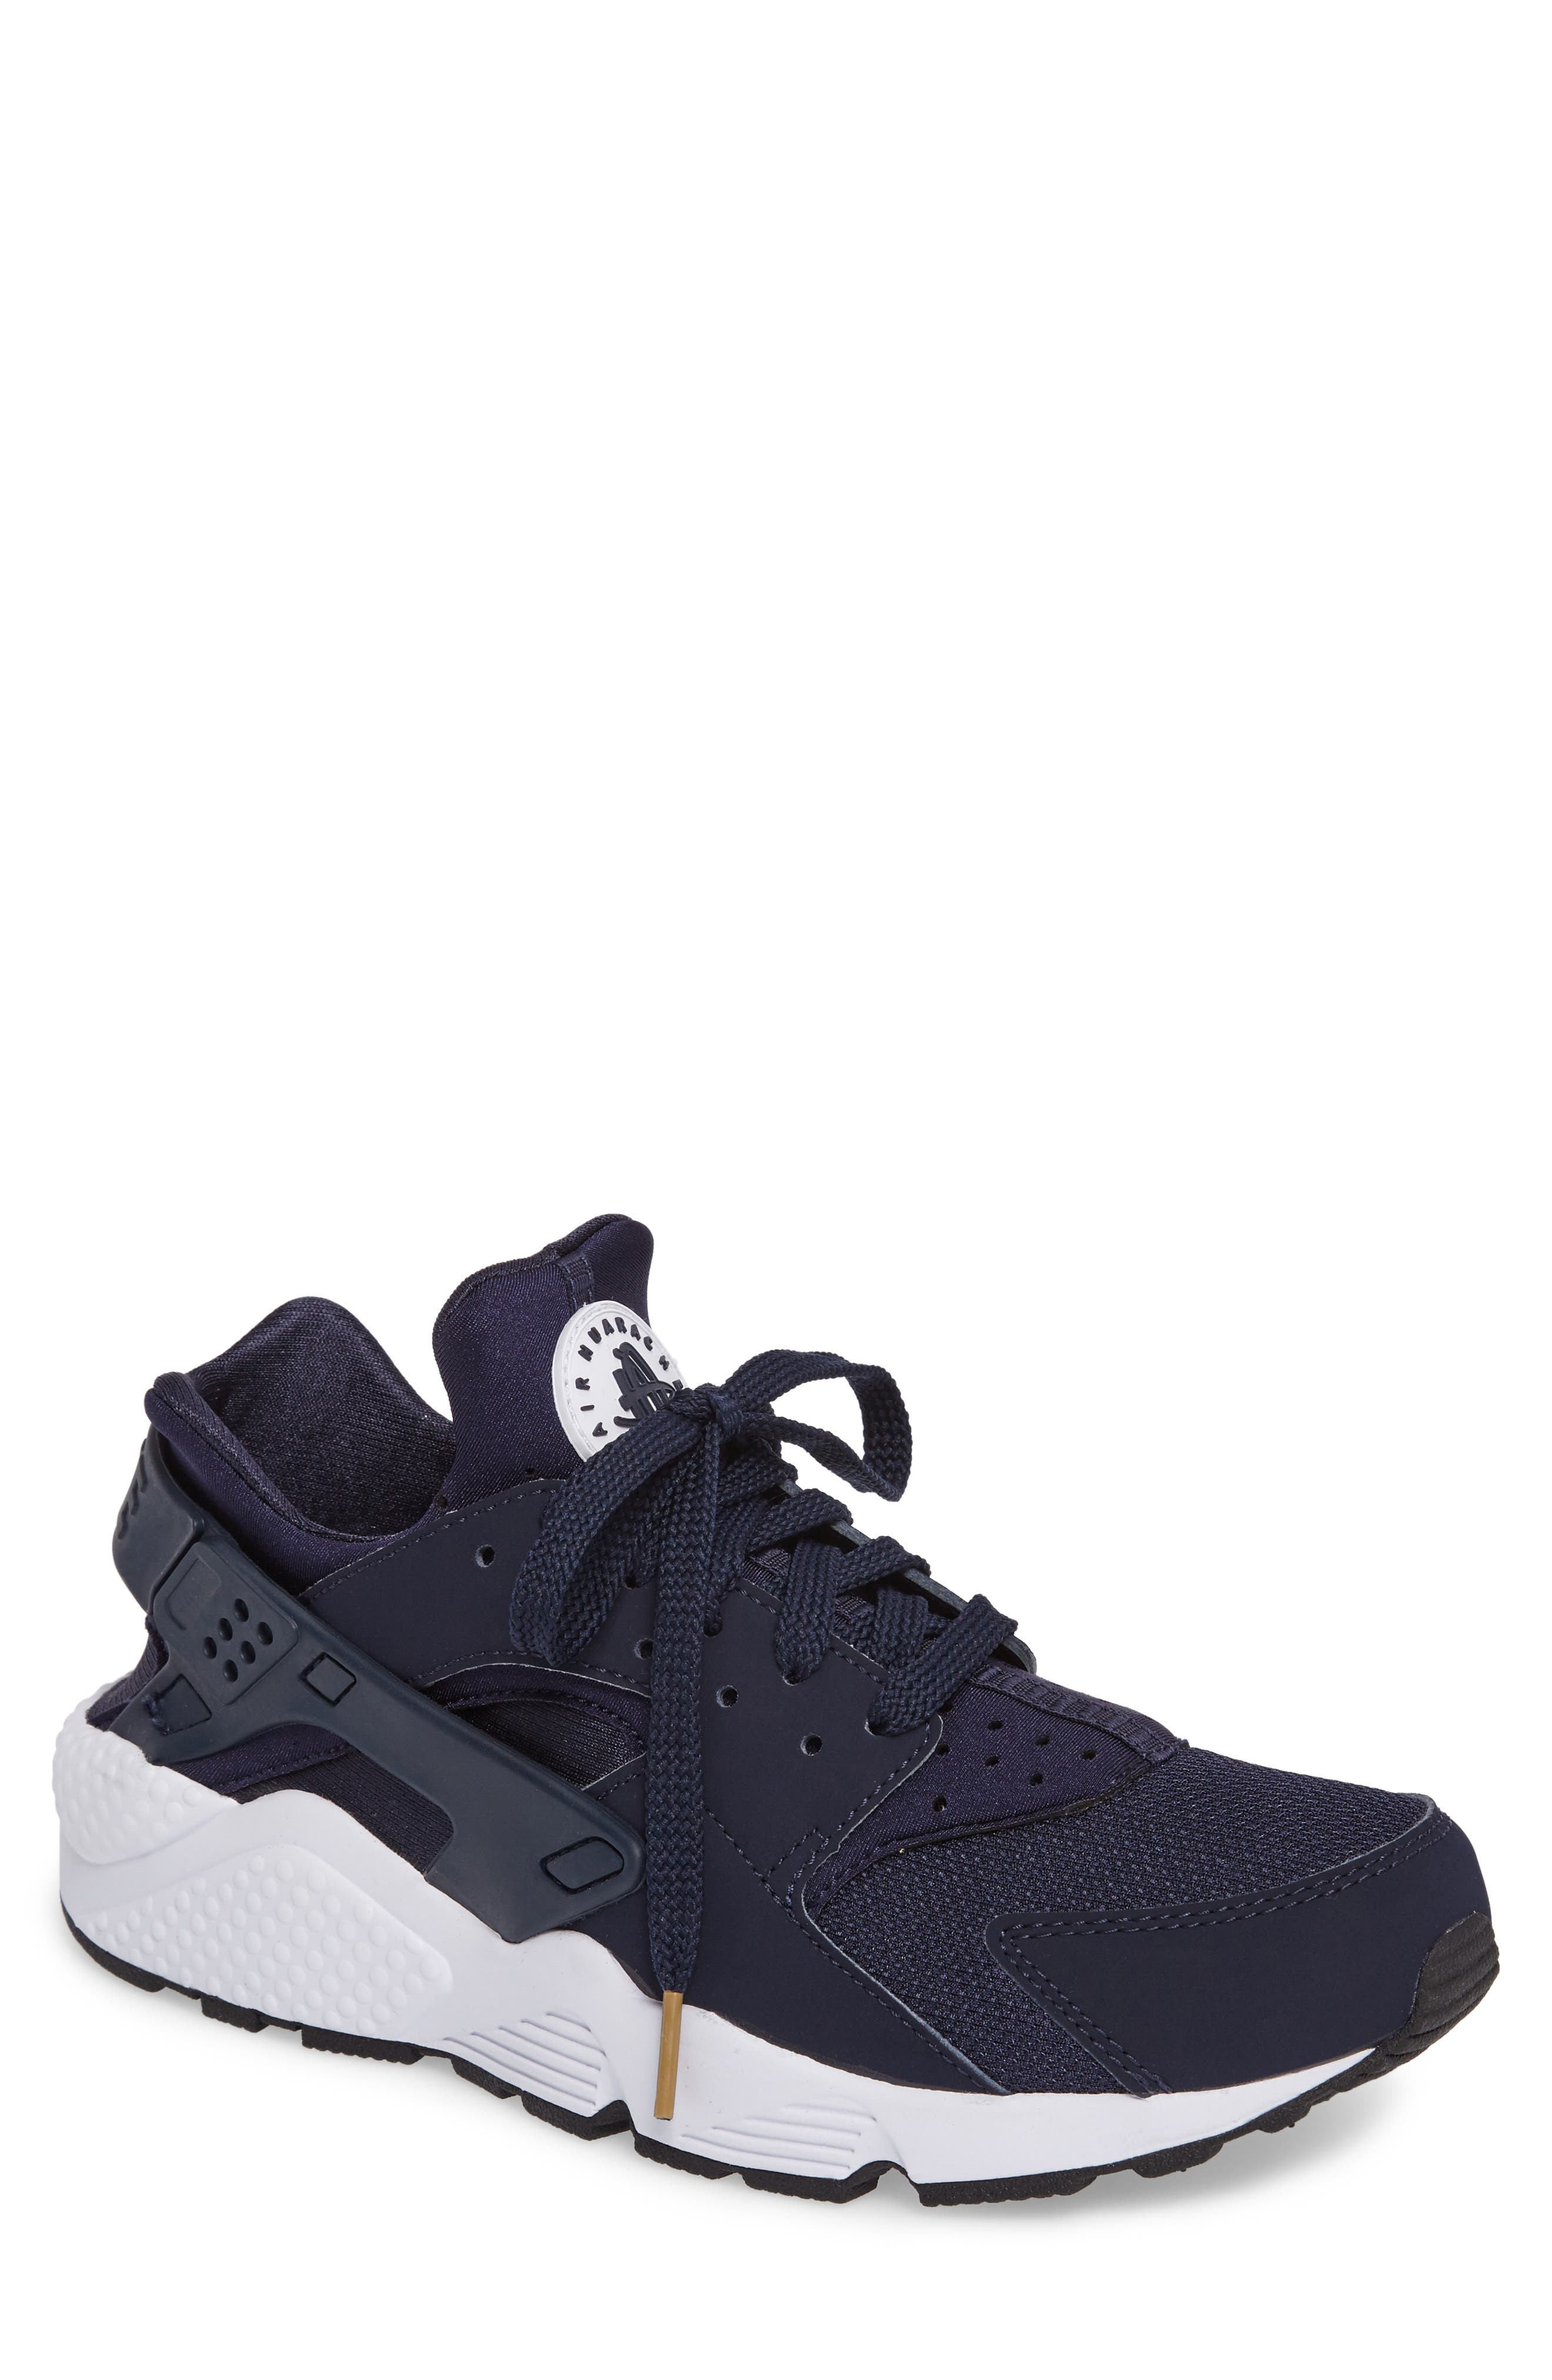 Main Image - Nike 'Air Huarache' Sneaker (Men)